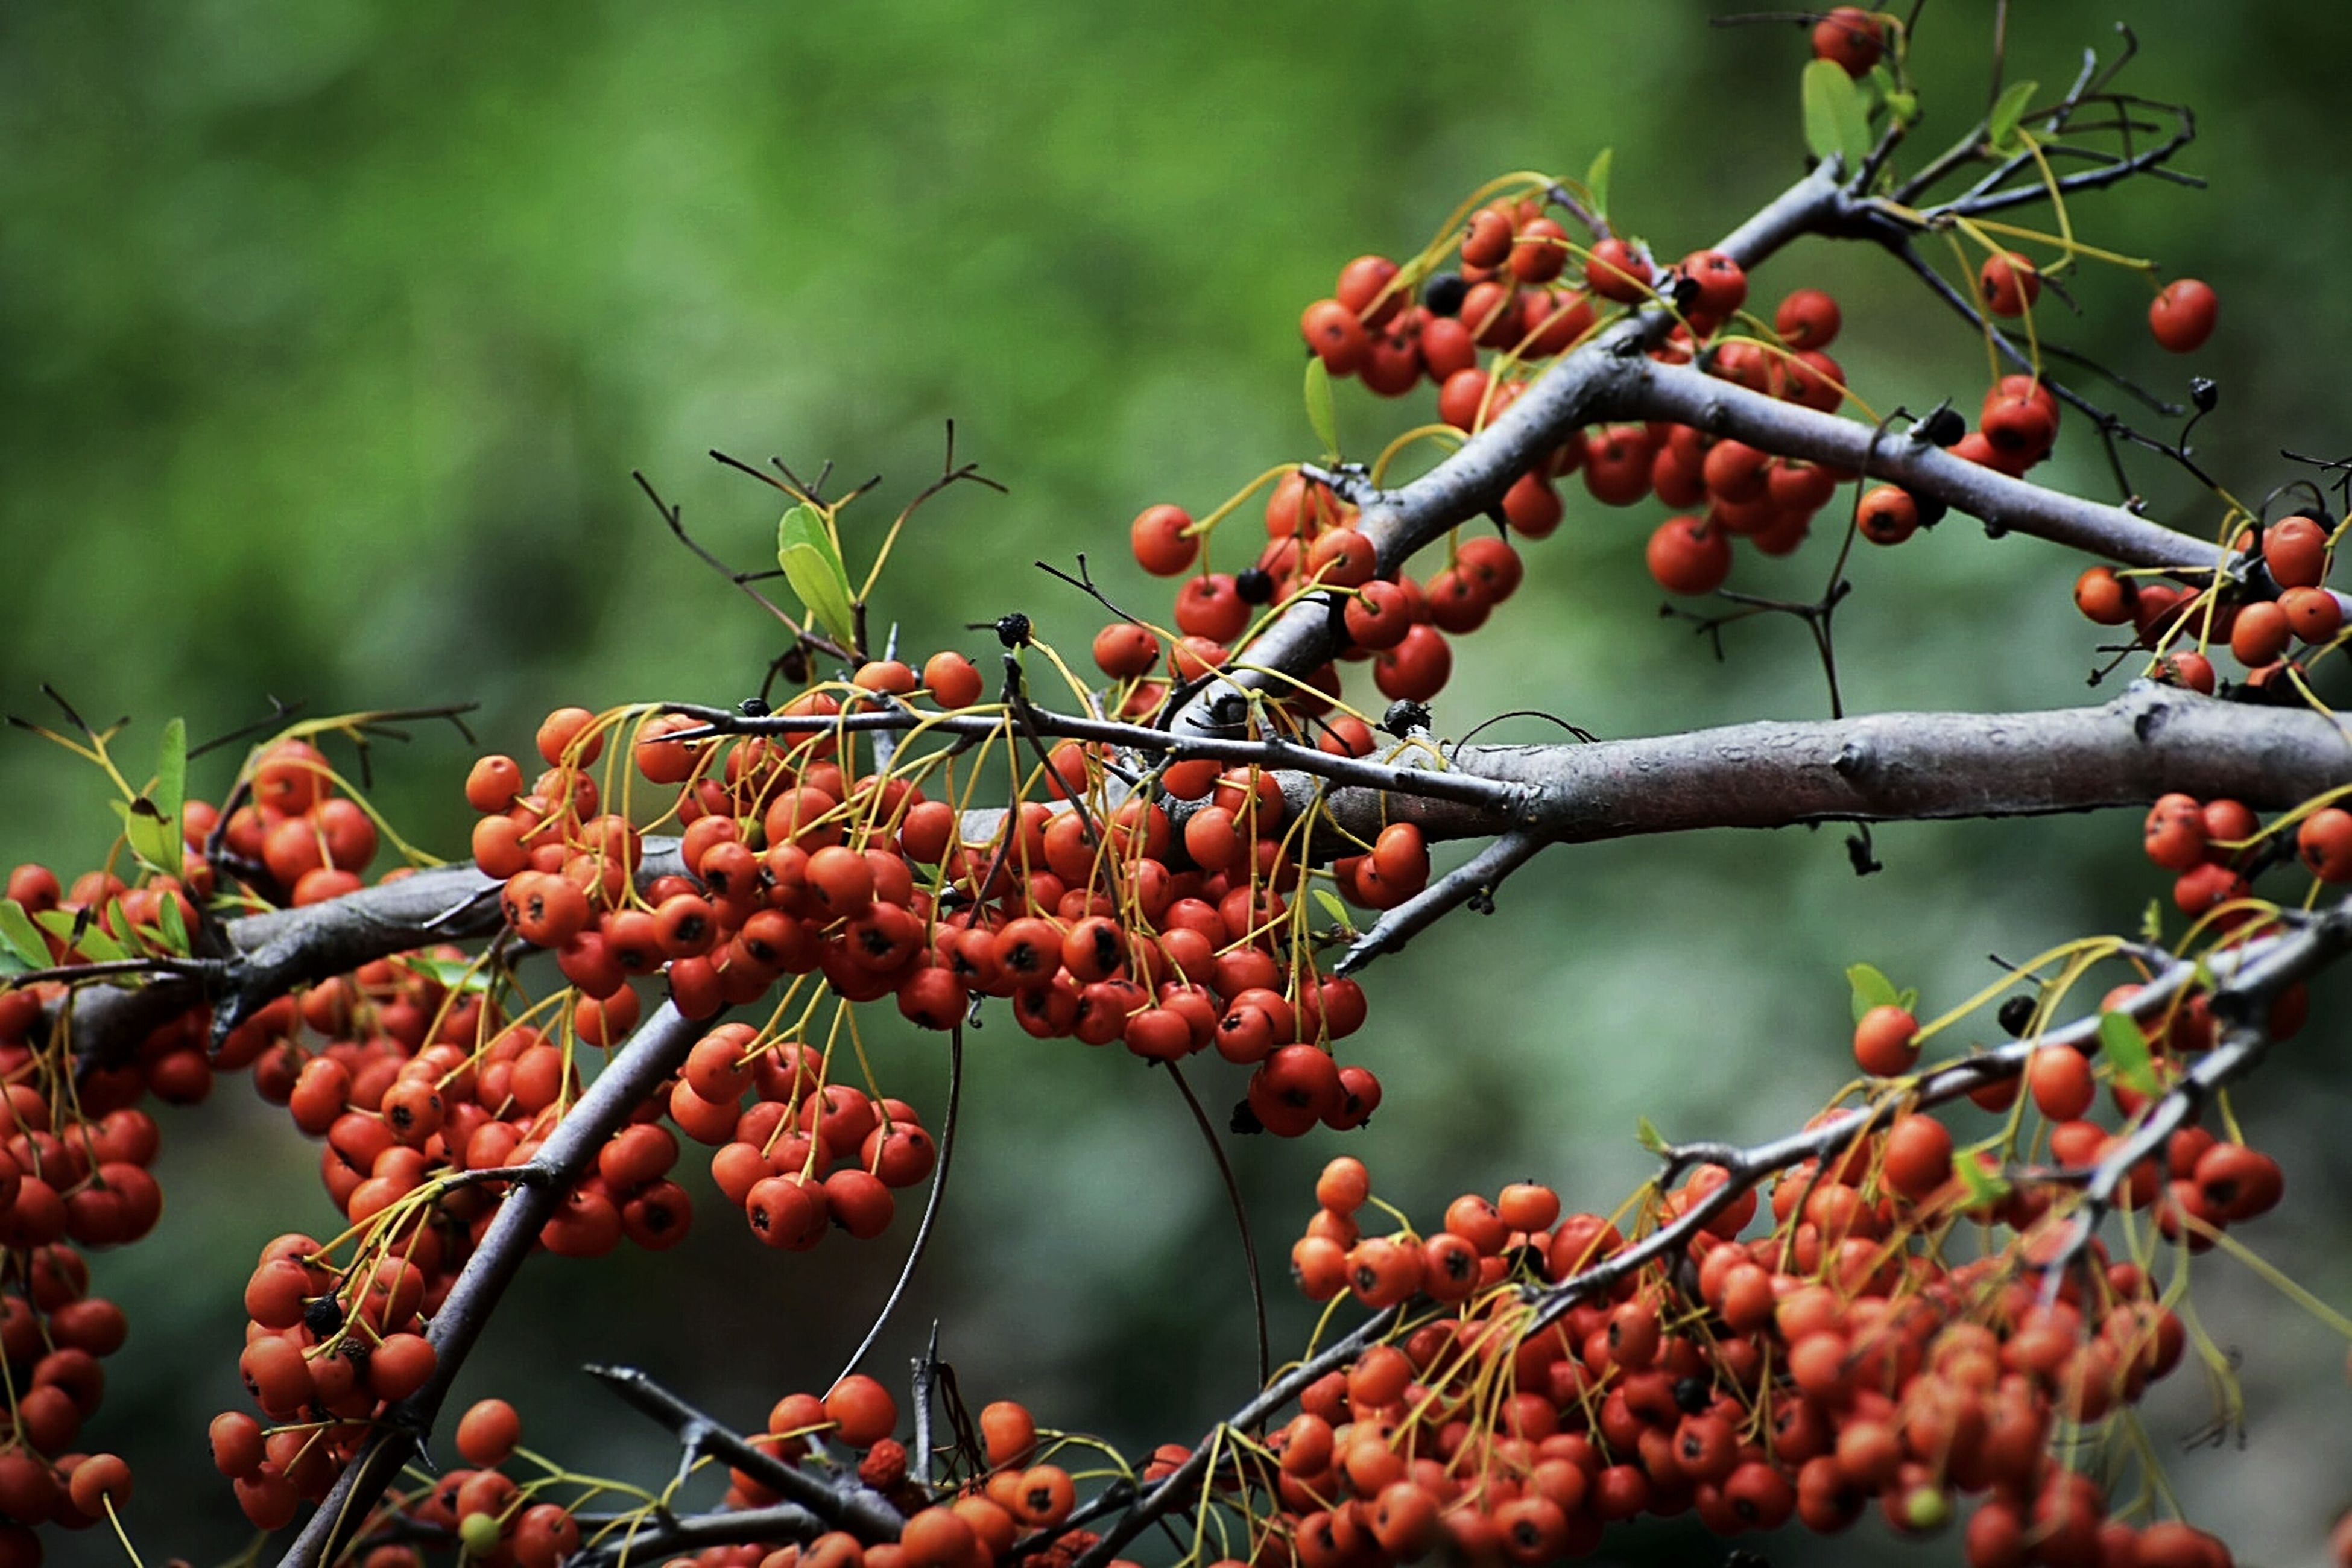 fruit, food and drink, tree, food, red, growth, rowanberry, outdoors, day, growing, focus on foreground, nature, no people, green color, beauty in nature, close-up, freshness